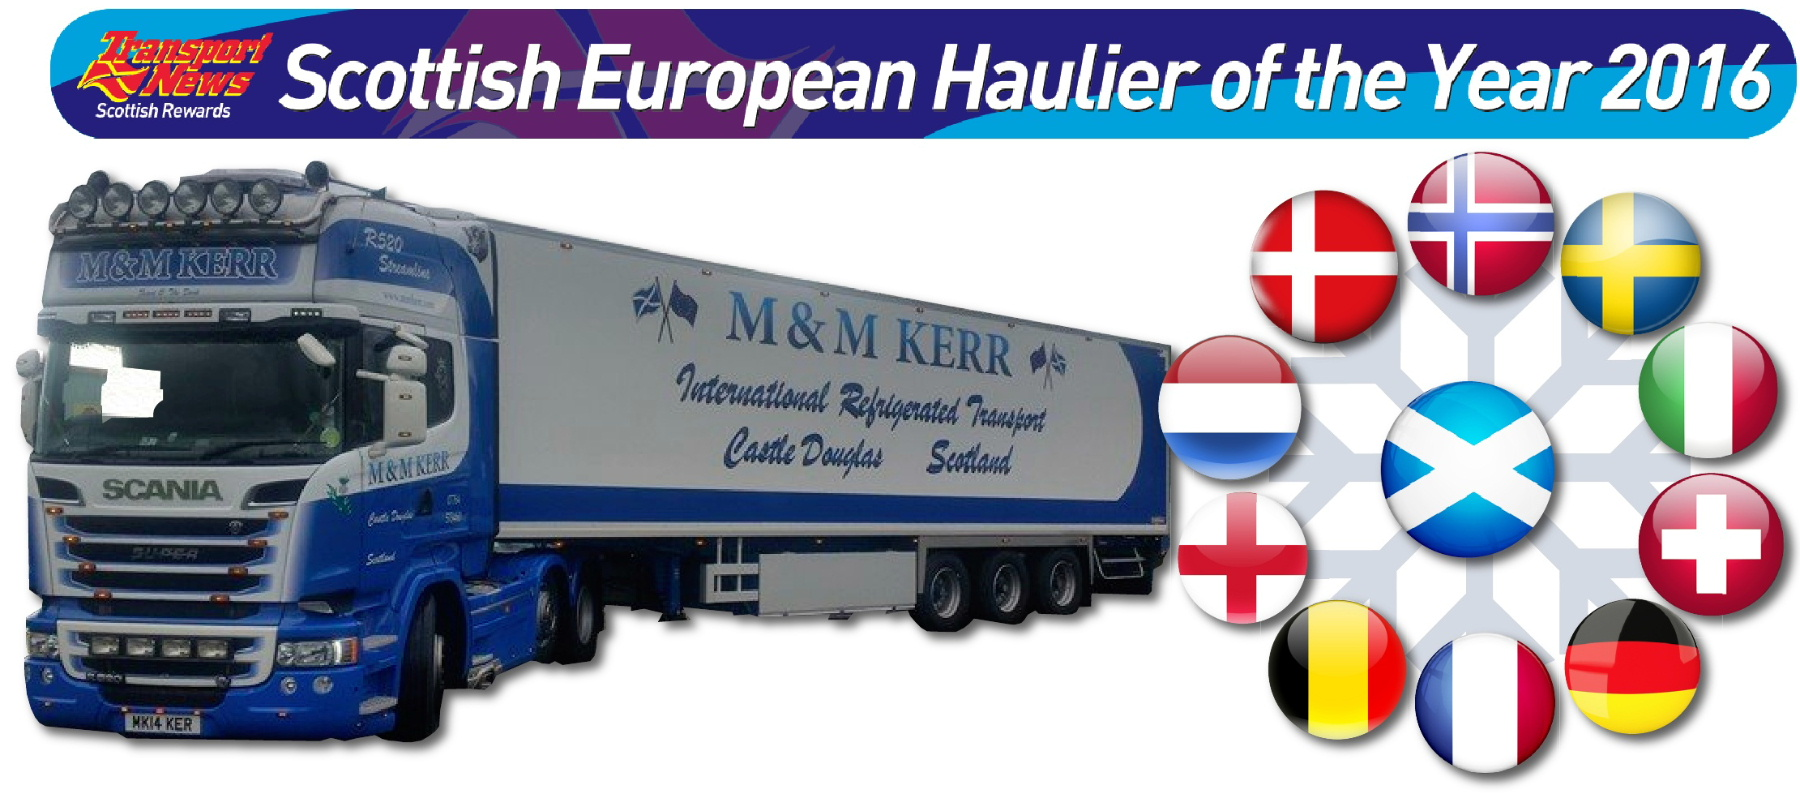 M&M Kerr Scottish European Haulier of the Year 2016